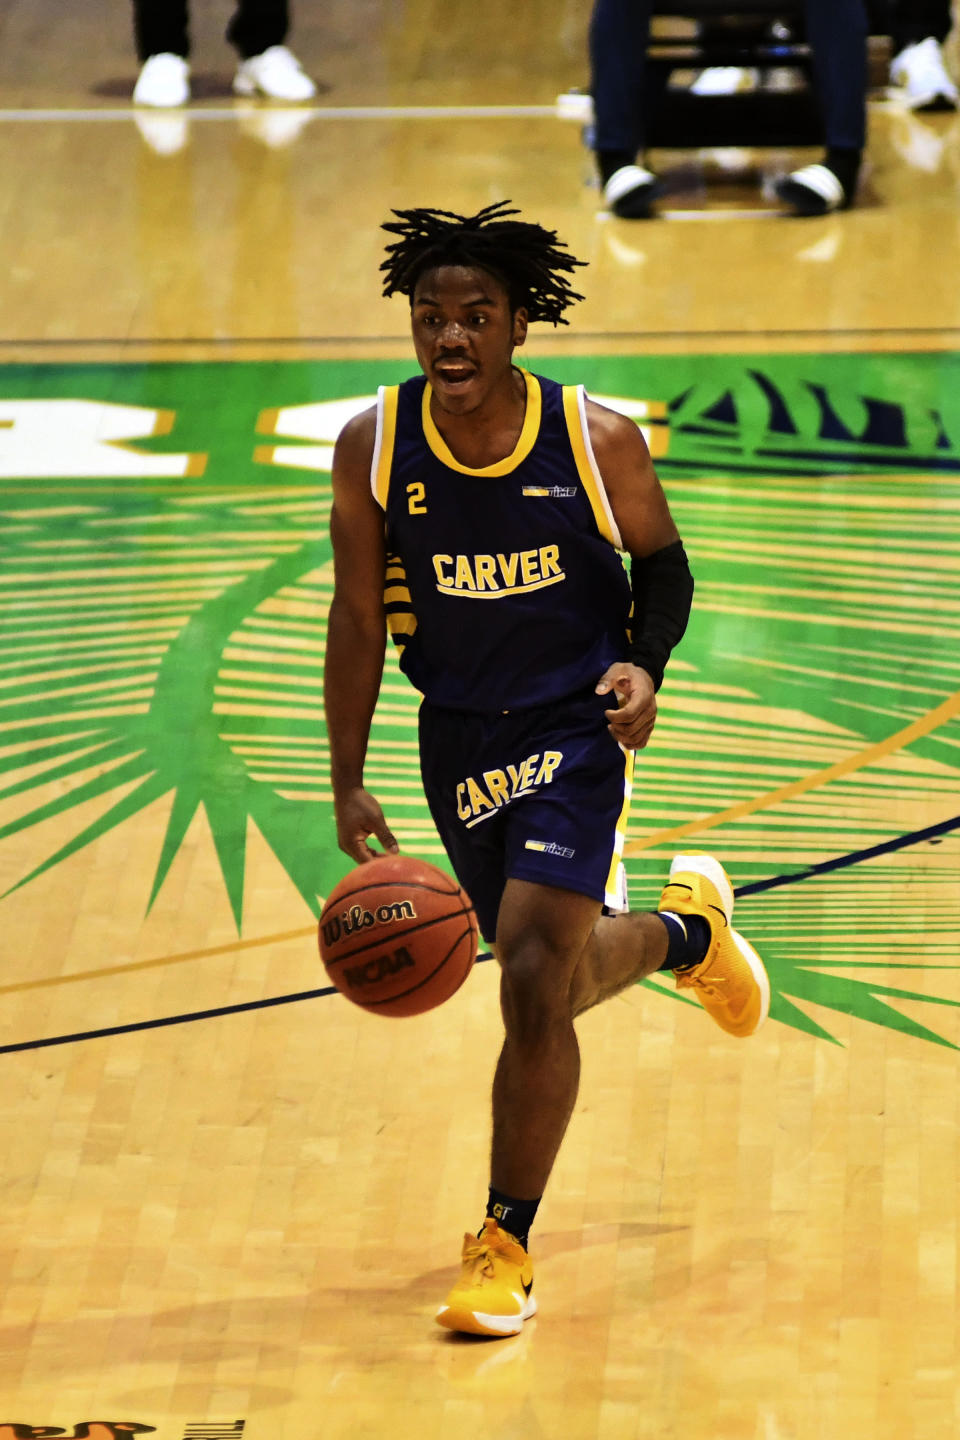 Carver College guard Chris Iverson brings the ball down court during the second half of an NCAA college basketball game against Florida International Monday, Dec. 21, 2020, in Miami. (AP Photo/Gaston De Cardenas)